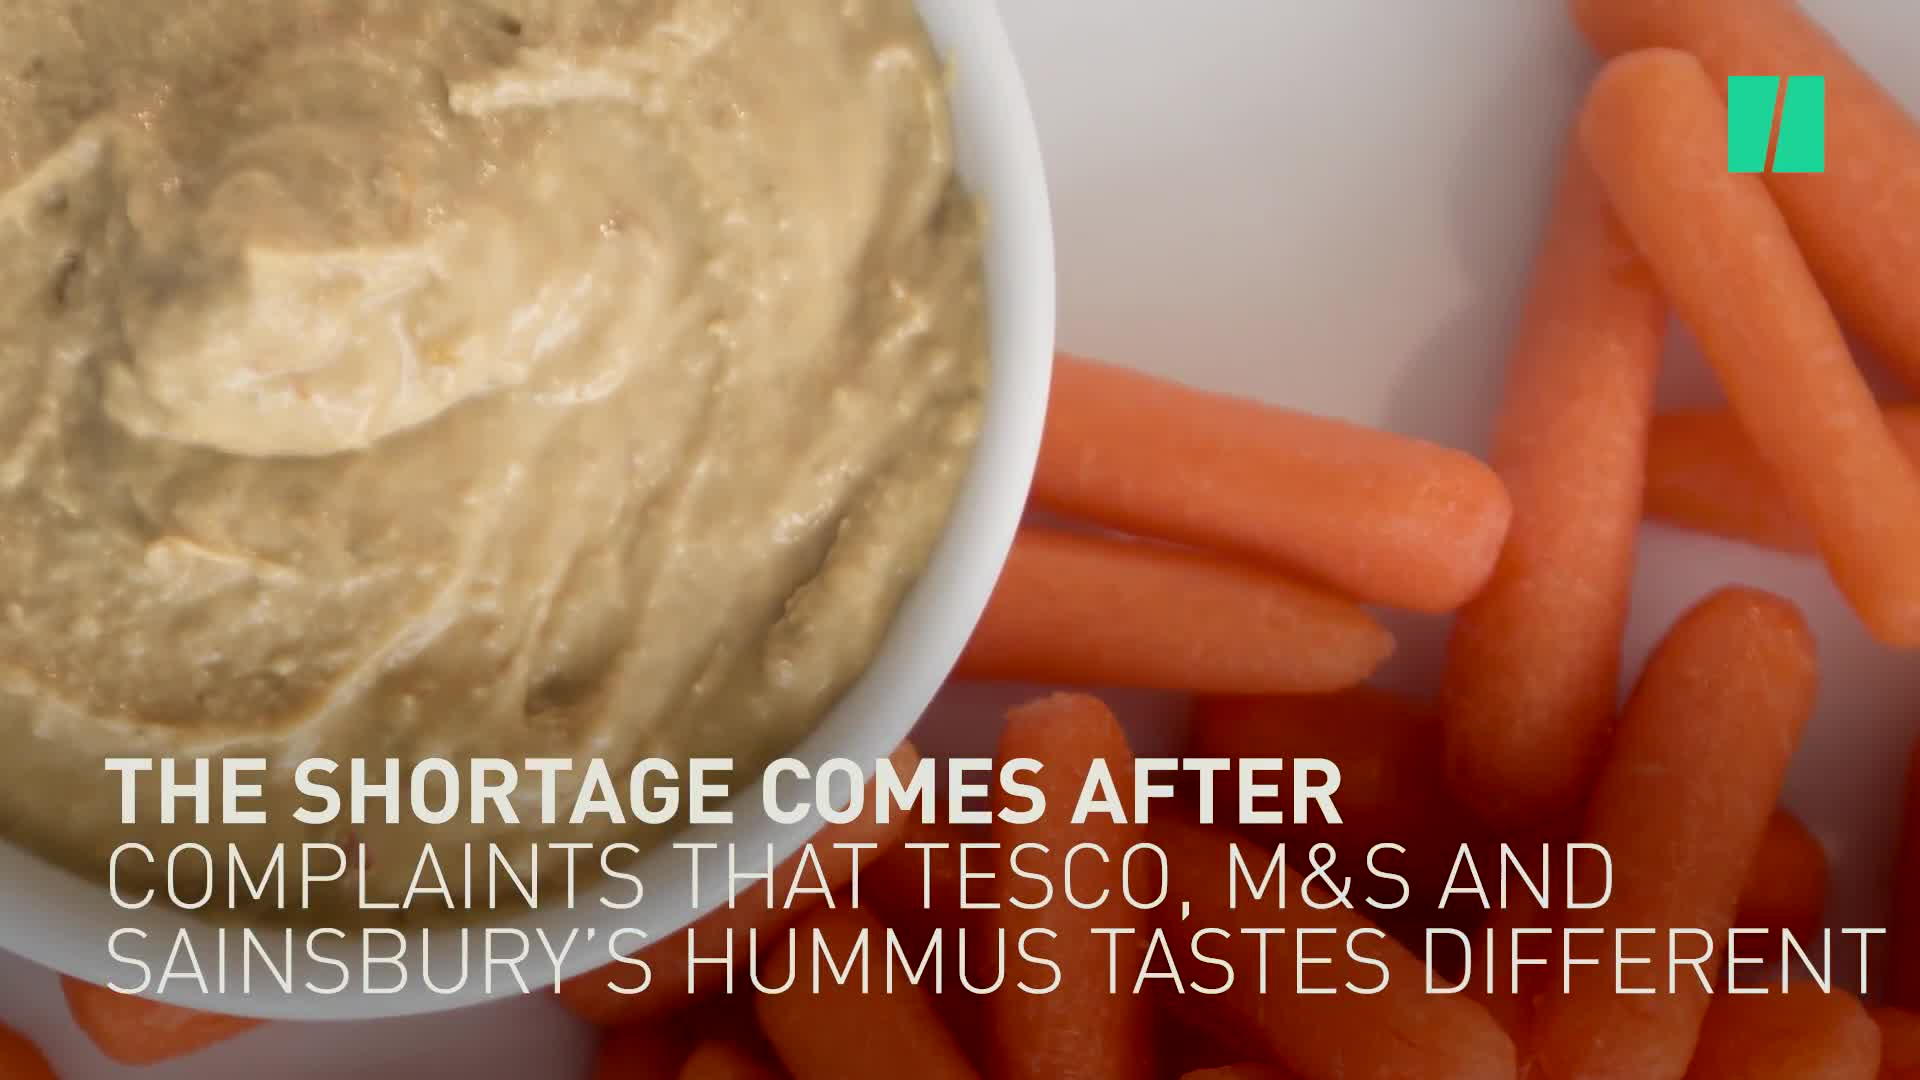 7 Reasons We Should All Be Eating More Hummus